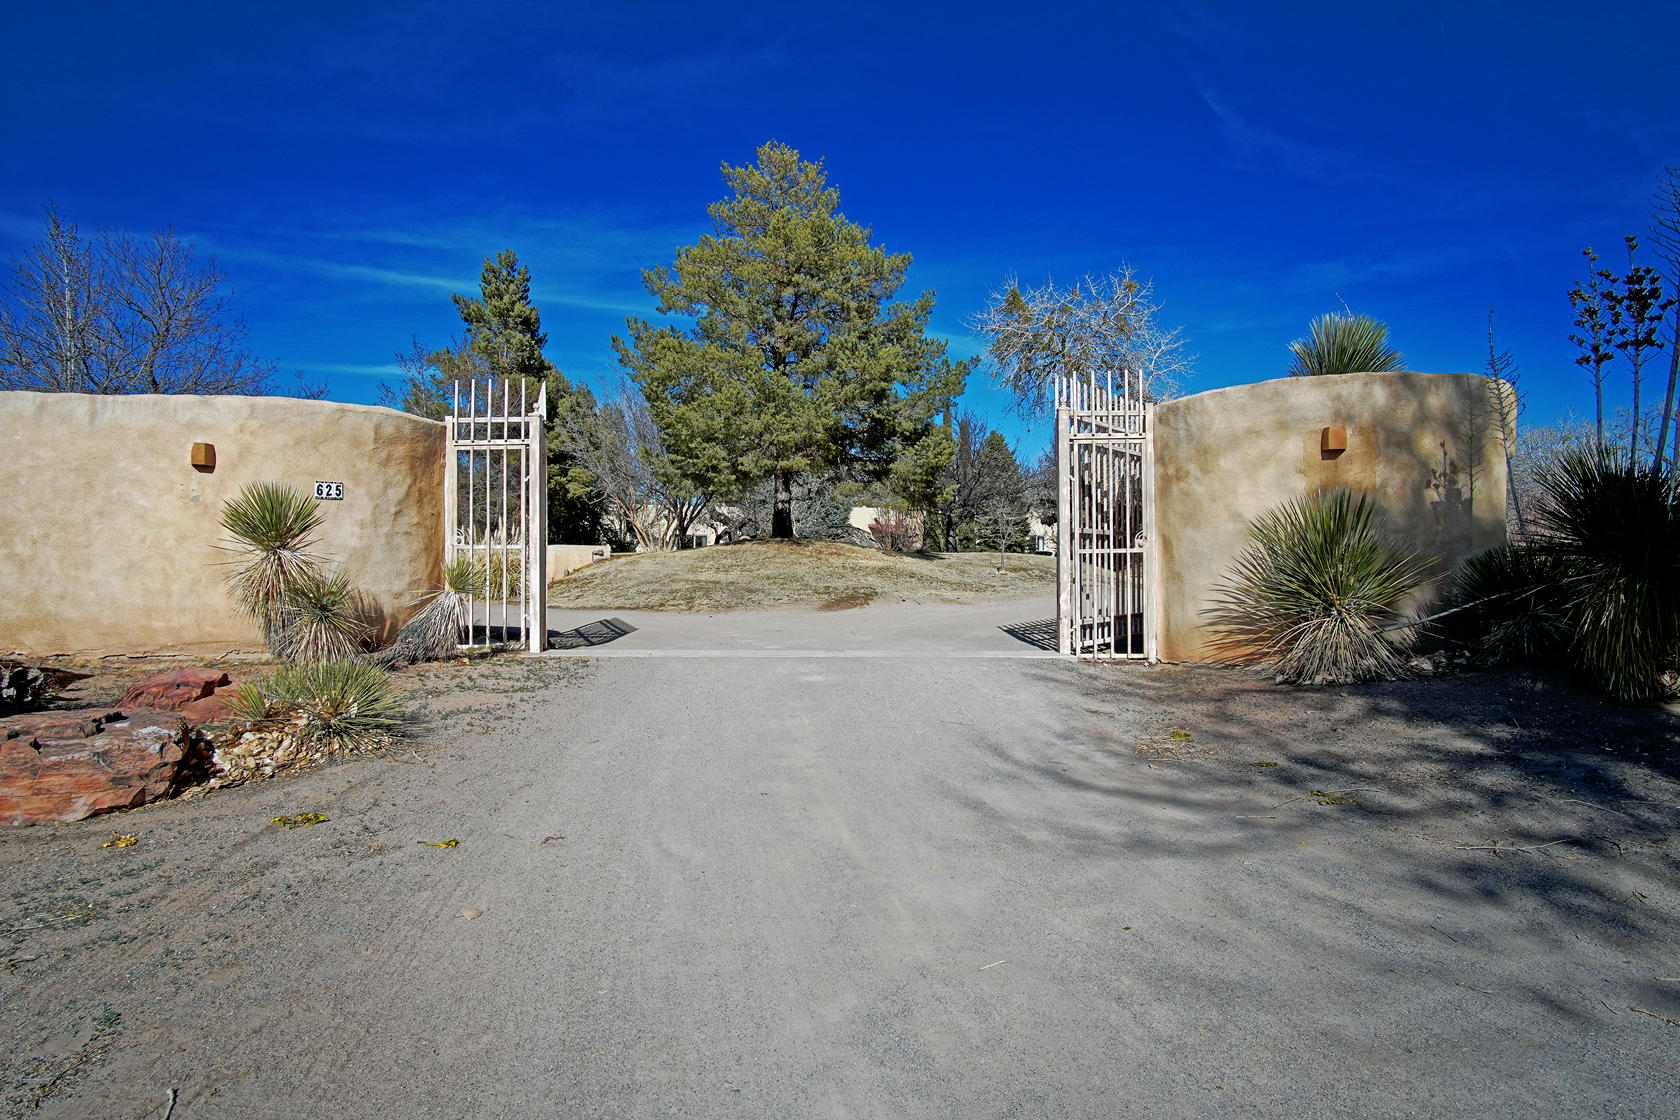 Picturesque 2.5 acre estate in Corrales Del Norte with sprawling lawns and big trees & stunning mountain views & direct access to hiking, biking & riding trails on Corrales bosque. Endless possibilities for adding separate studio/workshop, RV garage or even add to the existing vineyard. Enjoy country Corrales in a seclued setting with endless possibilities.This hidden paradise on the Bosque has adobe walls surround The entire 2.5 acres compound with a huge swimming pool,huge tennis court, wood windows,huge beams,high ceilings,marble floors,custom baths, and inside & huge outside hot tubs. The property consists of a 7500 sf main house and a 2500 sf guest house. Absolutley one of The nicest property in Corrales on the Bosque. Seller's personal items excluded & will not convey.